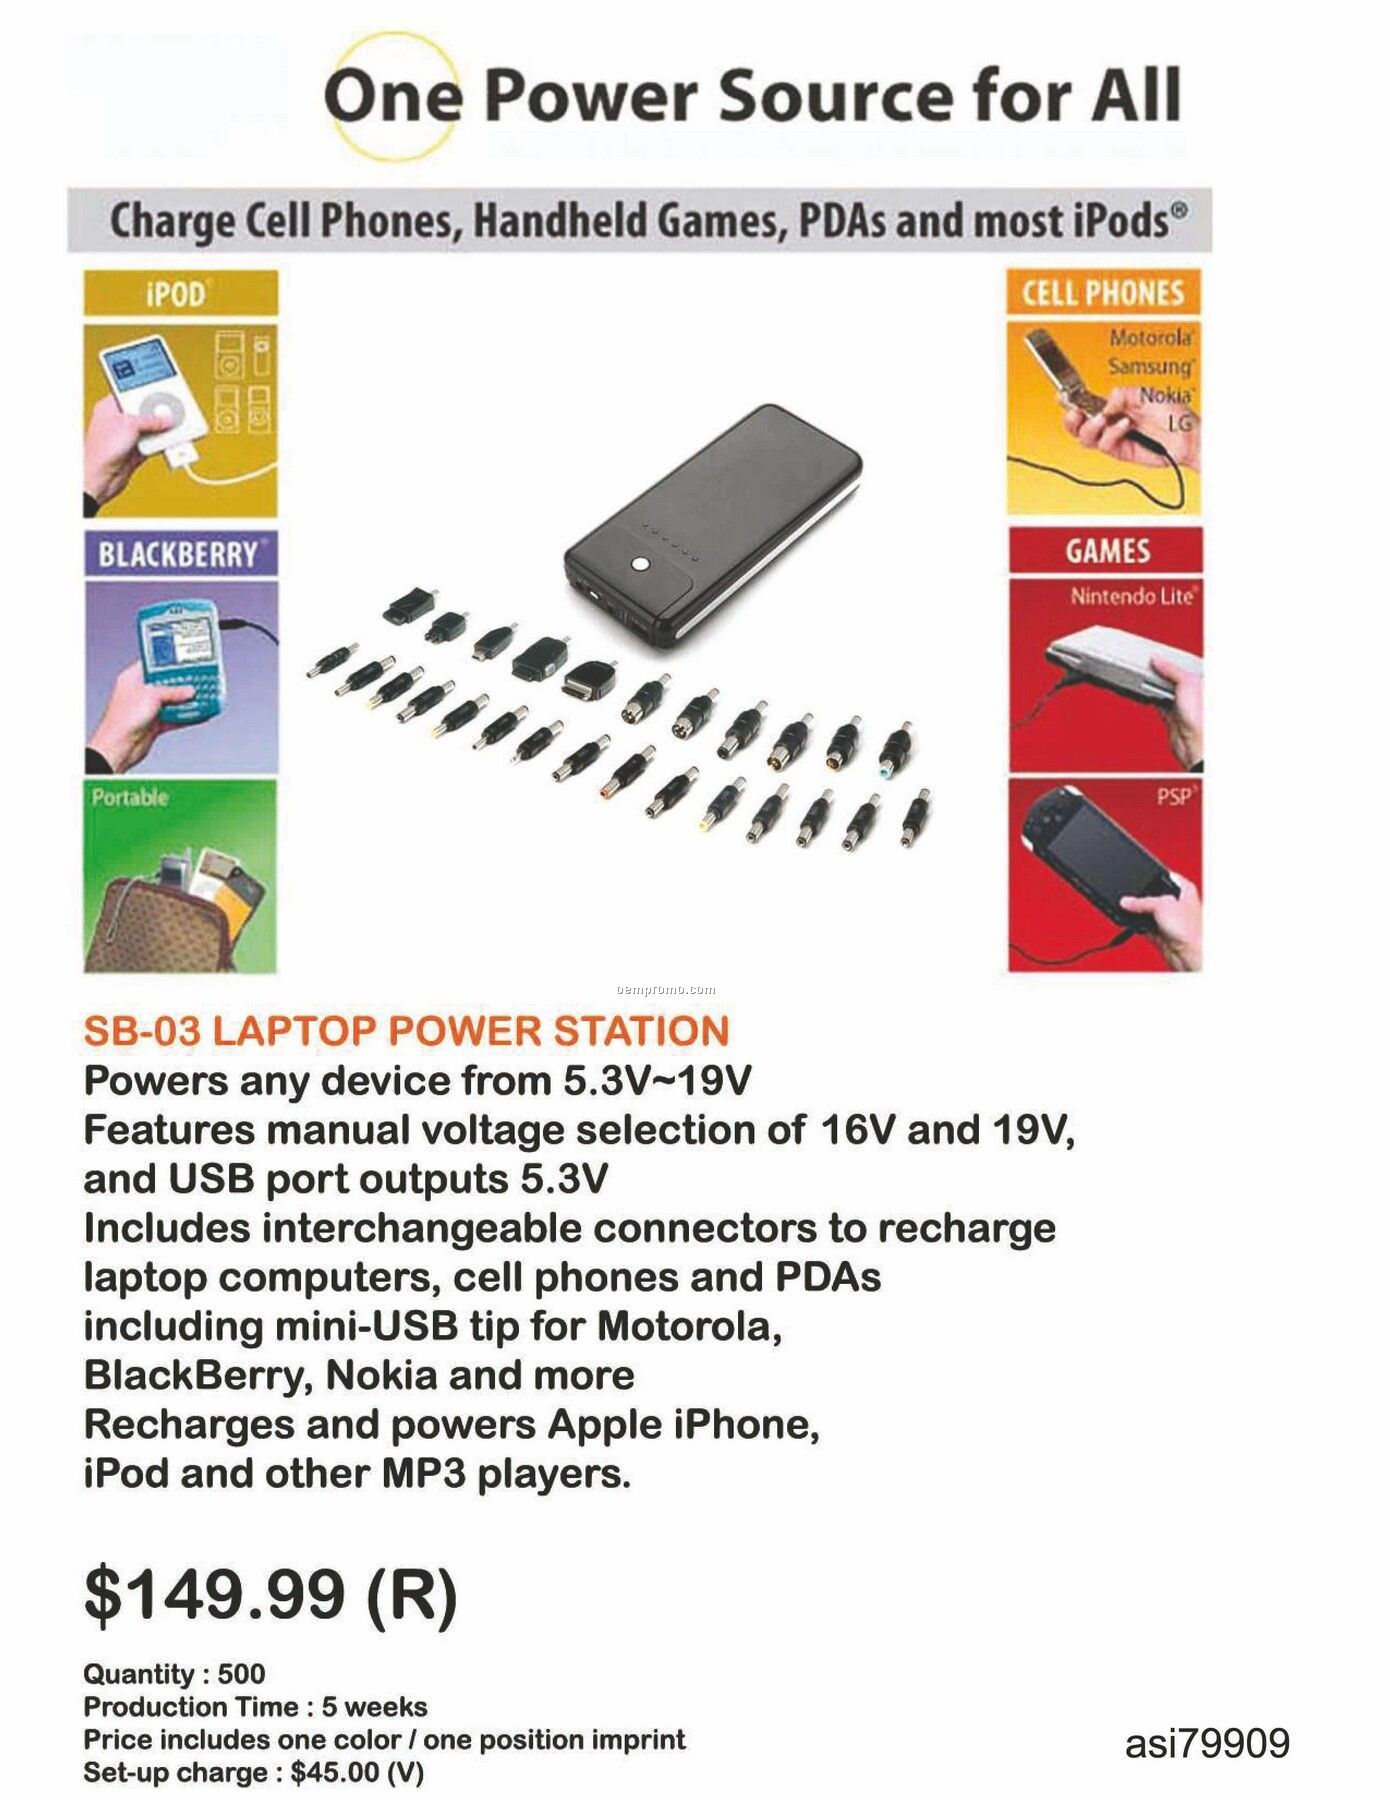 Battery Charger For Laptop, Iphone, Ipod, Blackberry, Android